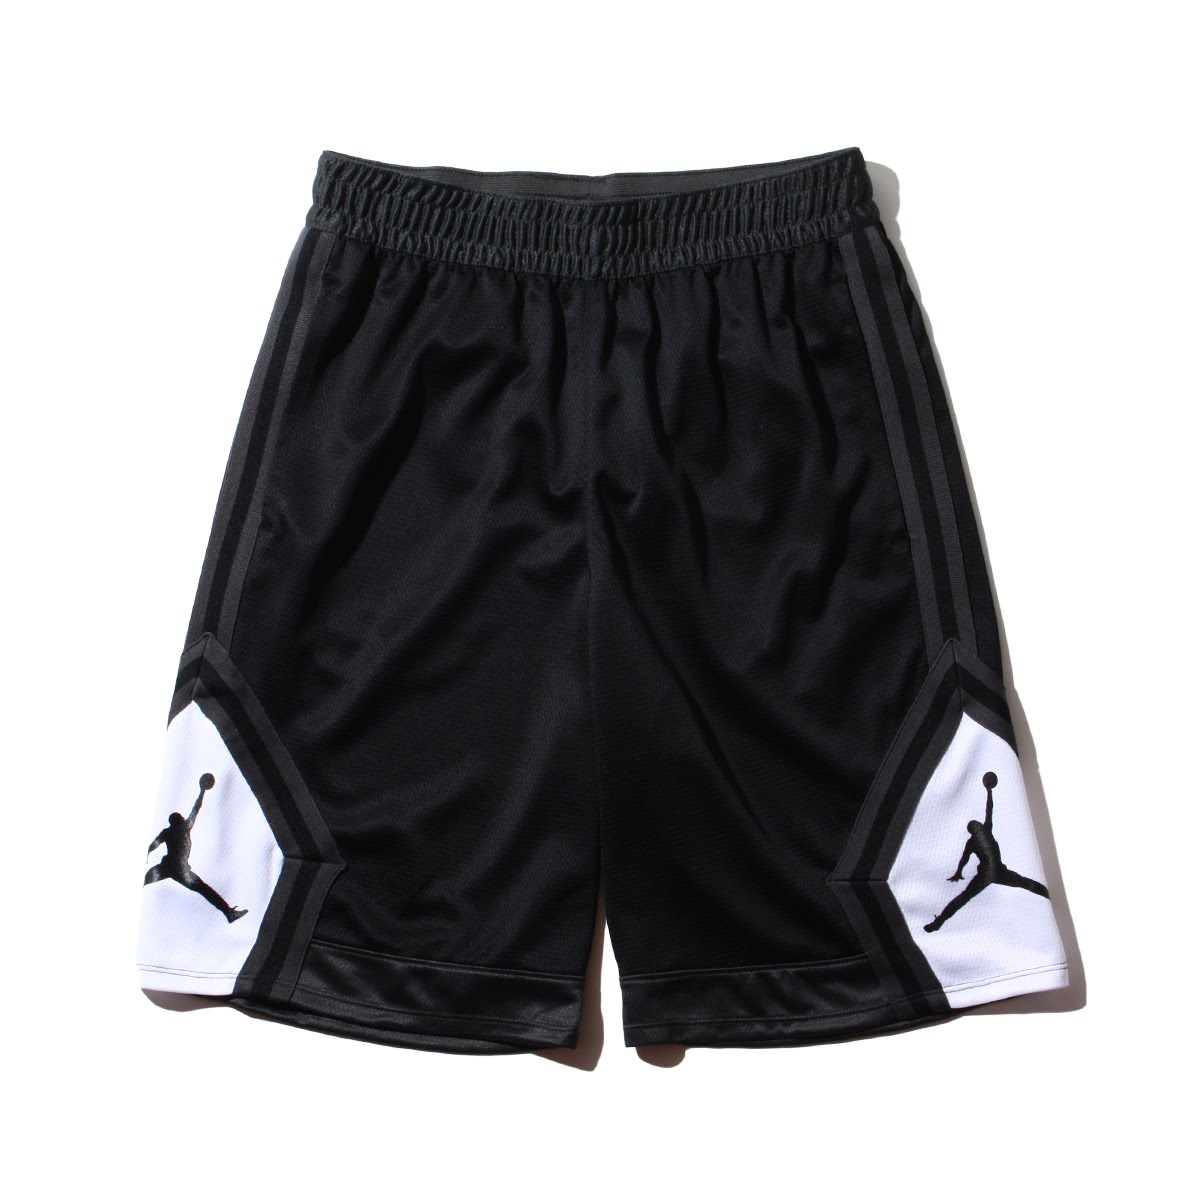 b4f1b53dd68 Basket shorts of the DRI-FIT warp knit (100% of polyester) material  adoption.